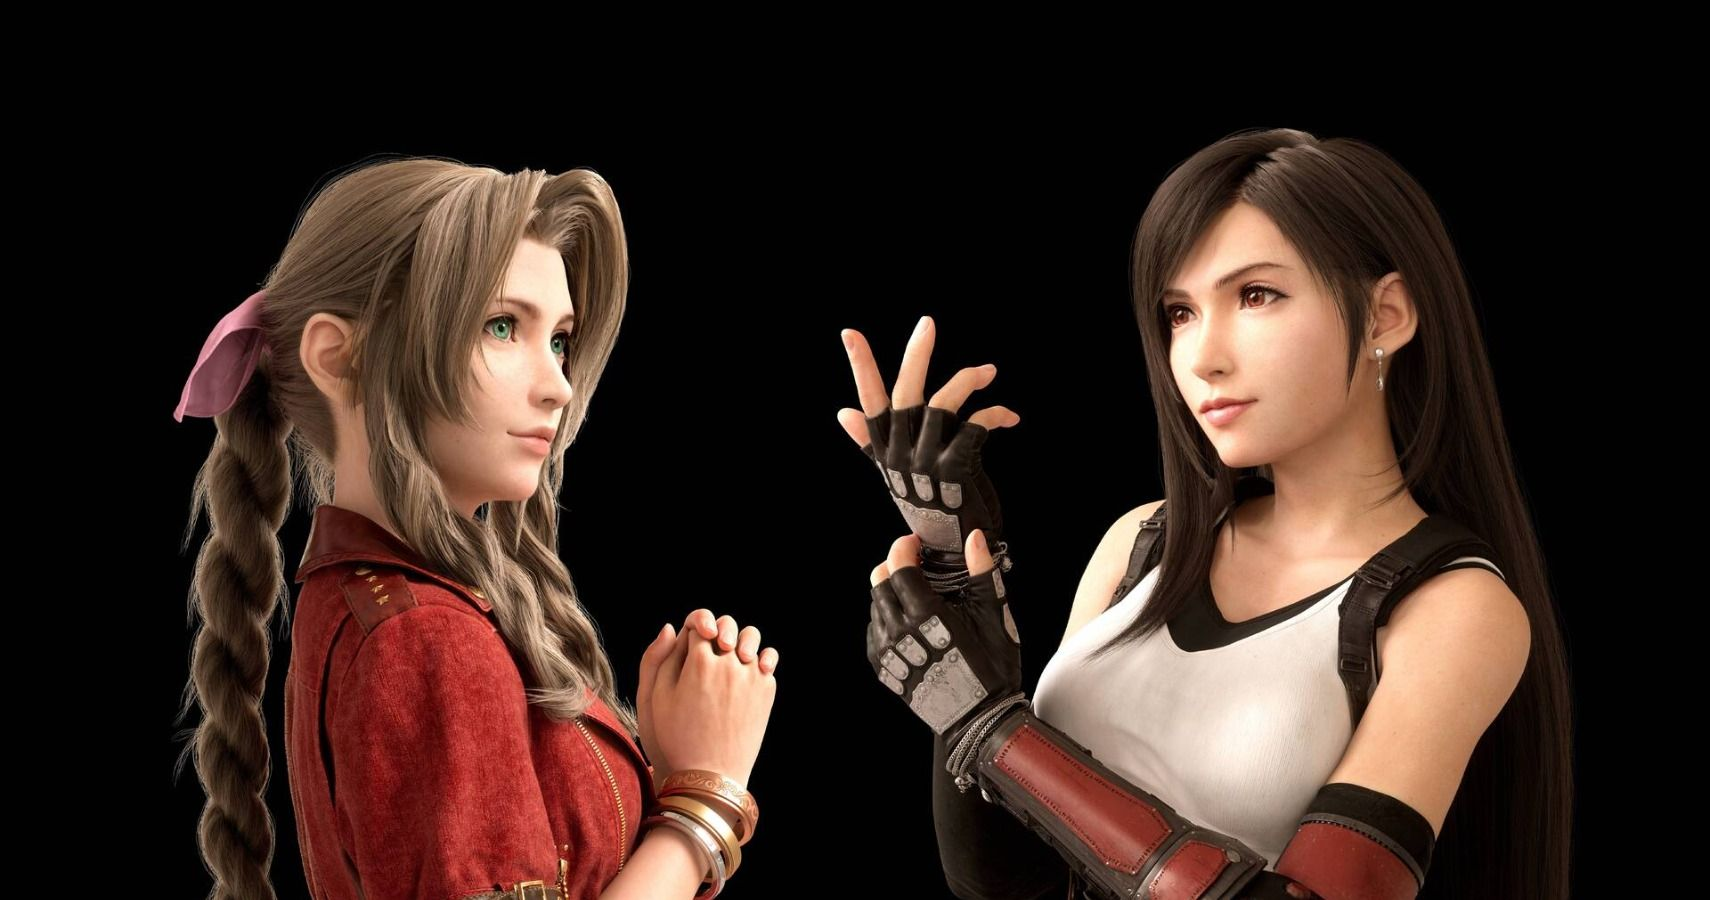 Aerith Needs To Dump Cloud And Zach For Tifa In Final Fantasy 7 Remake 2